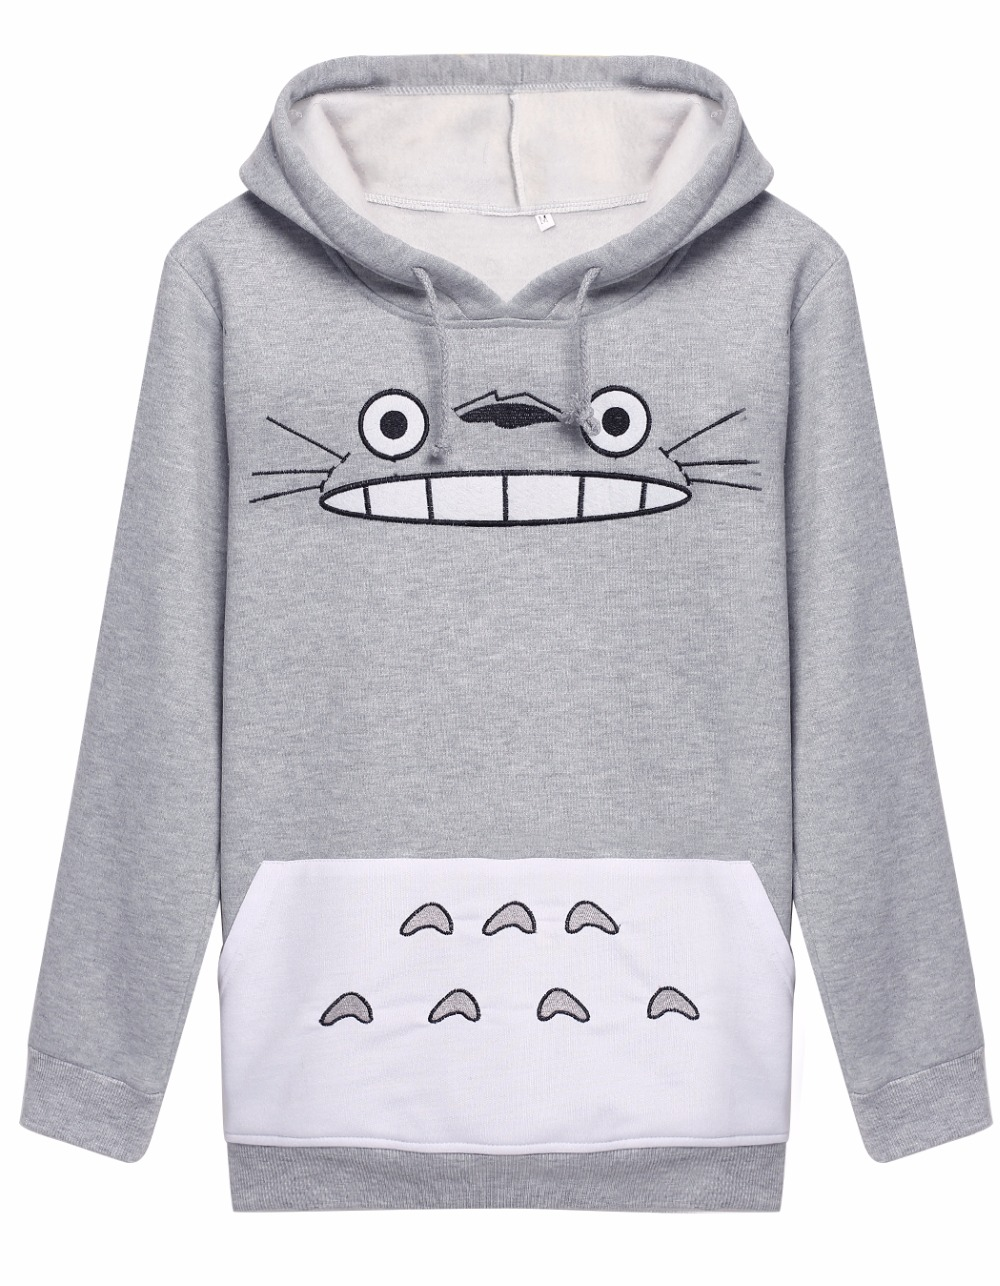 2018 New Arrival Cosplay Totoro Harajuku Outside Clothes Tail Zip Hoodie Hoody Sweatshirt  Costume For Man and Woman